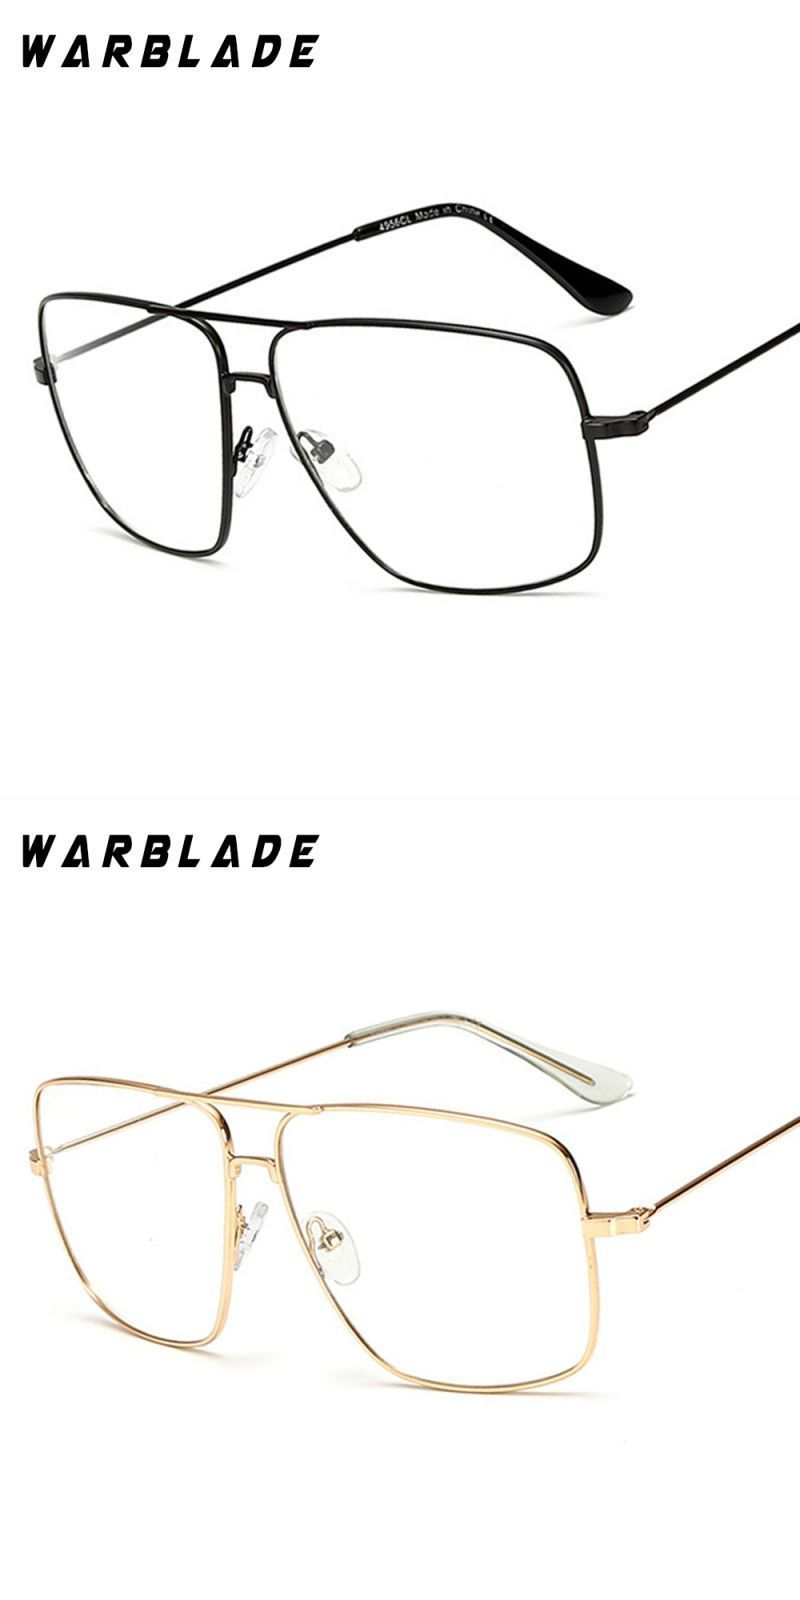 a3973c1e73dd 2018 lightweight and elegant retro classic metal frame glasses myopia eyeglasses  women men square clear glasses